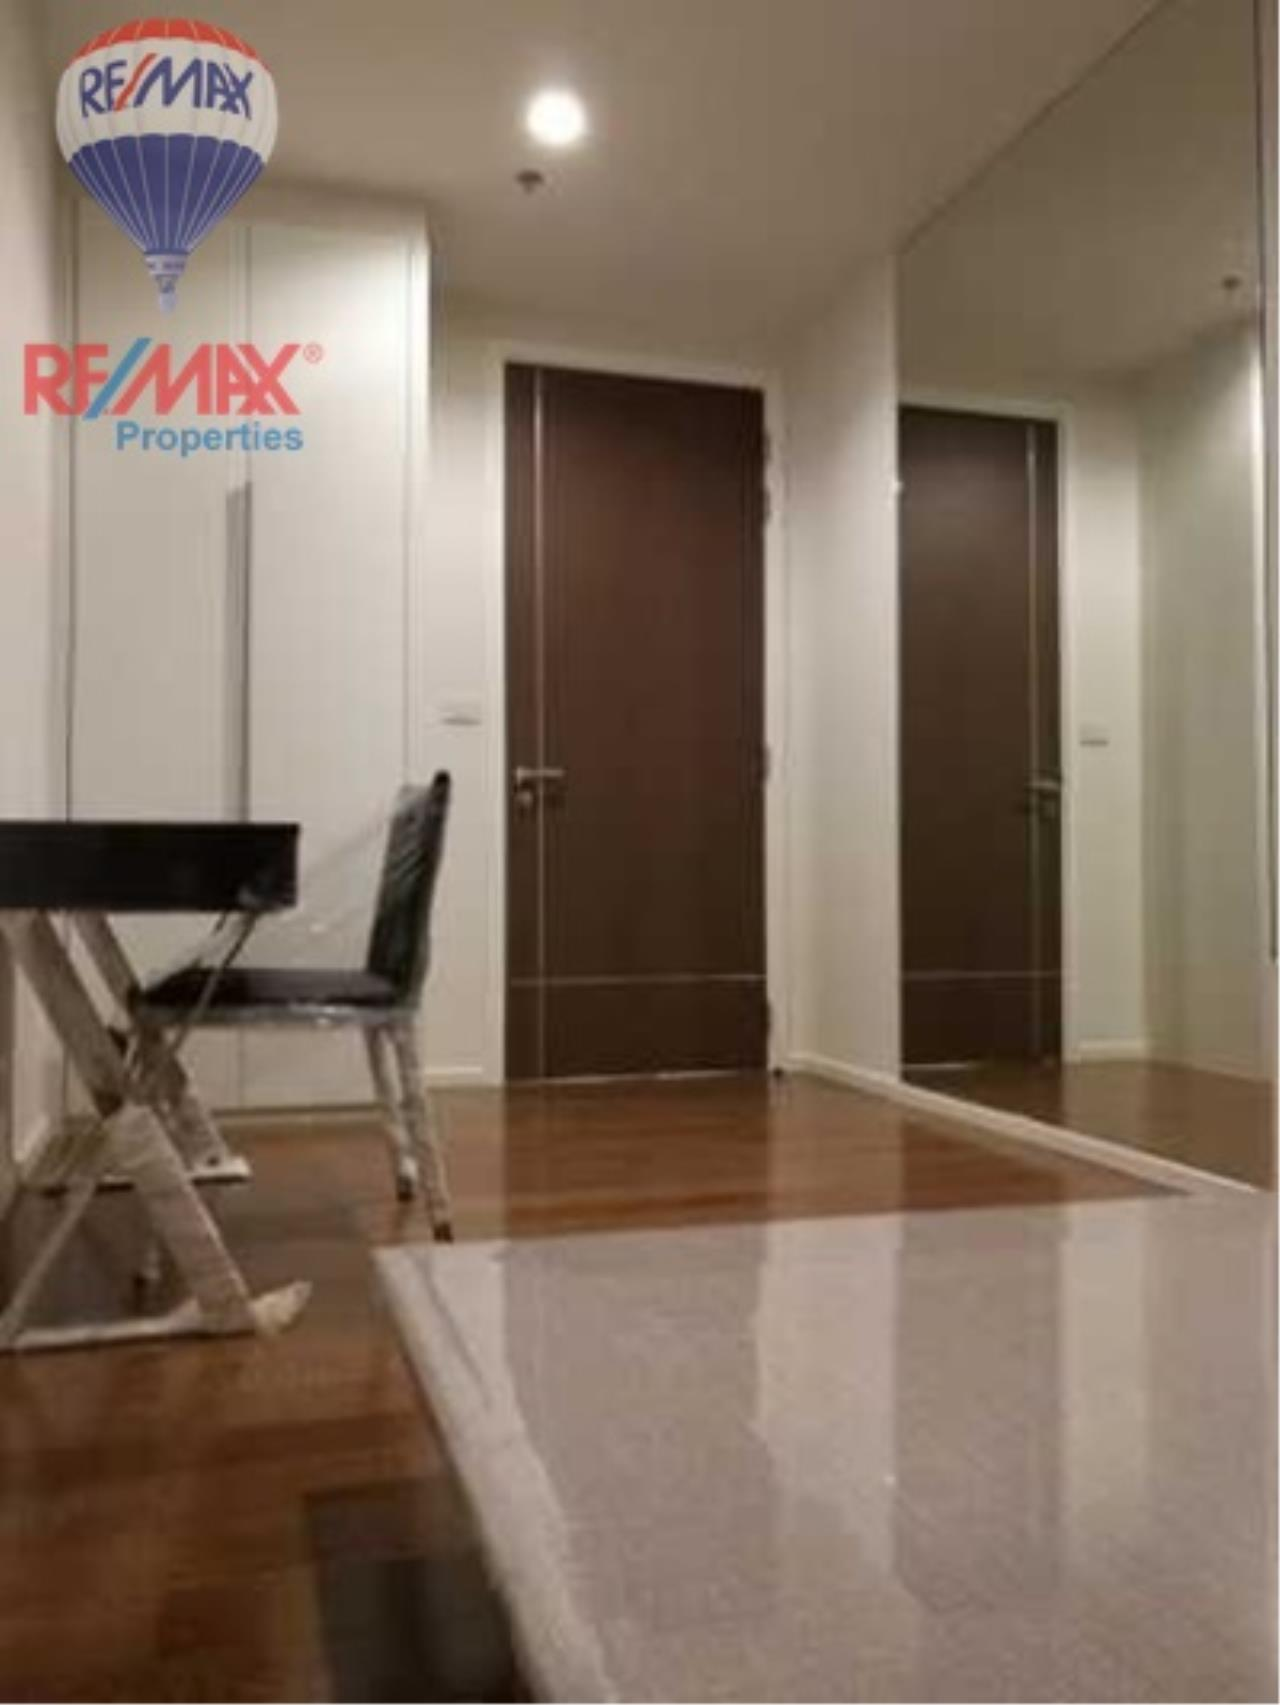 RE/MAX Properties Agency's SALE/RENT 2 BEDROOMS 65.74 SQ.M AT 15 RESIDENCE 4